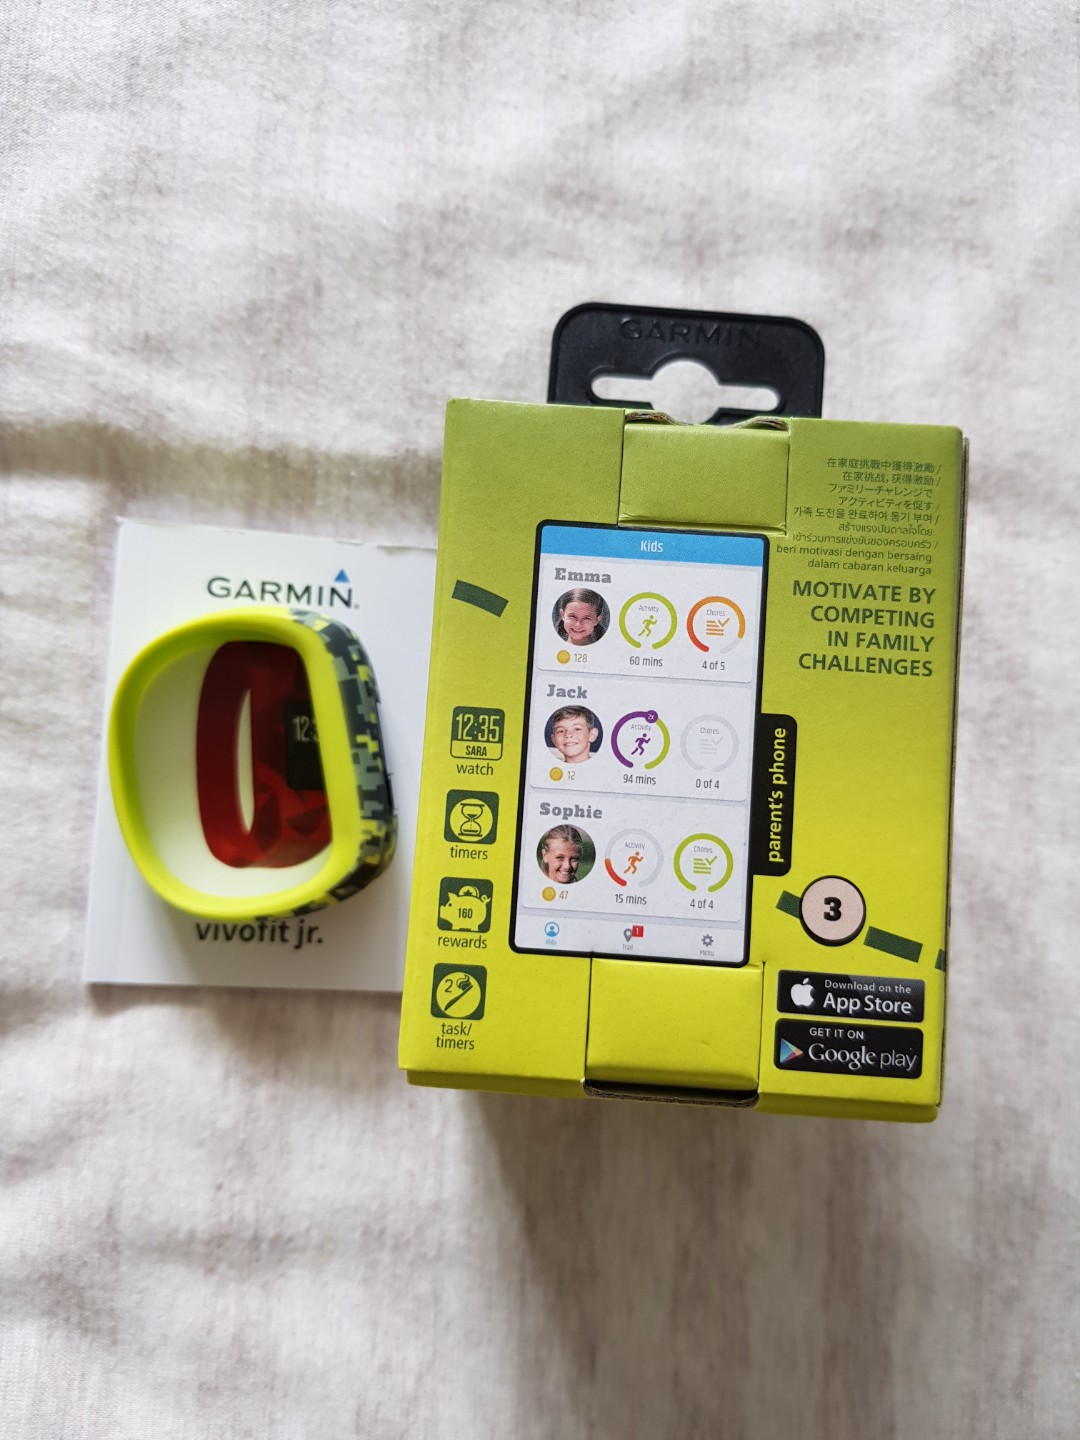 GARMIN VIVOfit jr  For ages 3-10